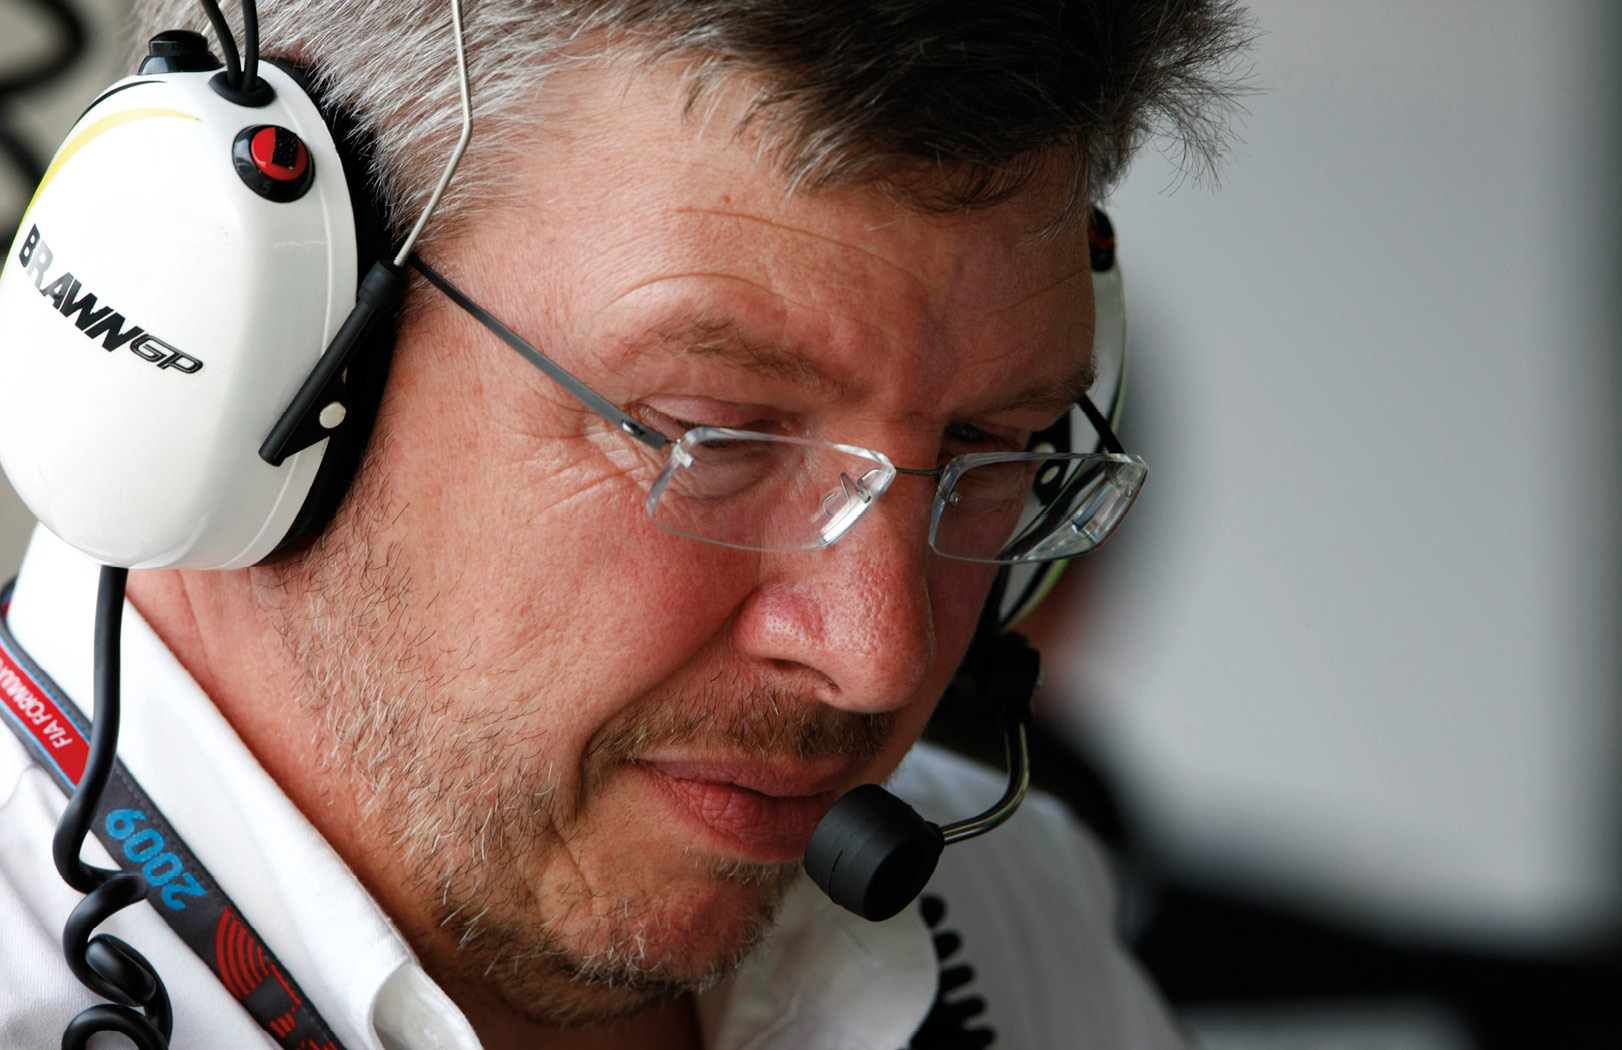 Ross Brawn became an entrant in his own right after Honda withdrew from F1 at short notice